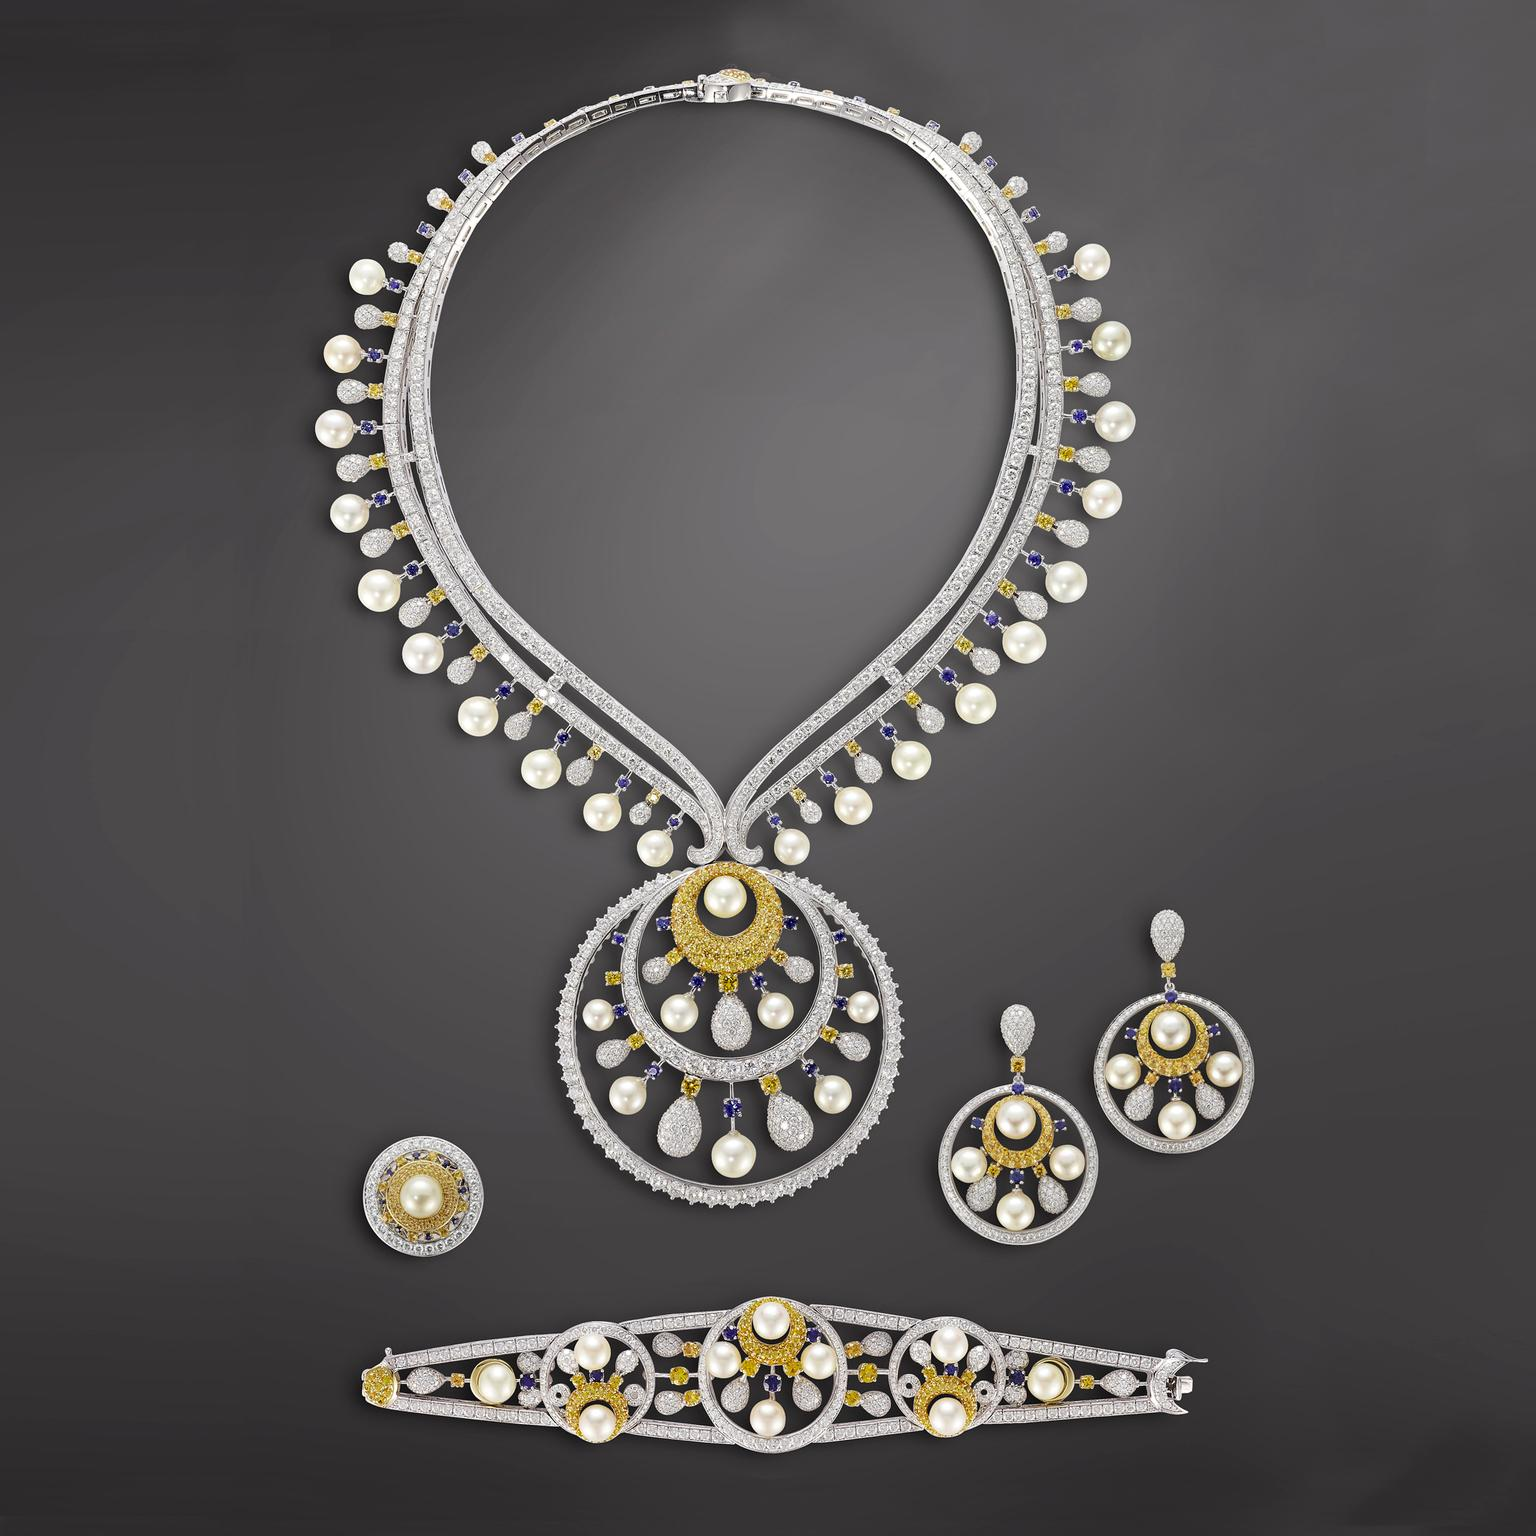 Mouawad Lunar Pearl Suite with Arabian pearls